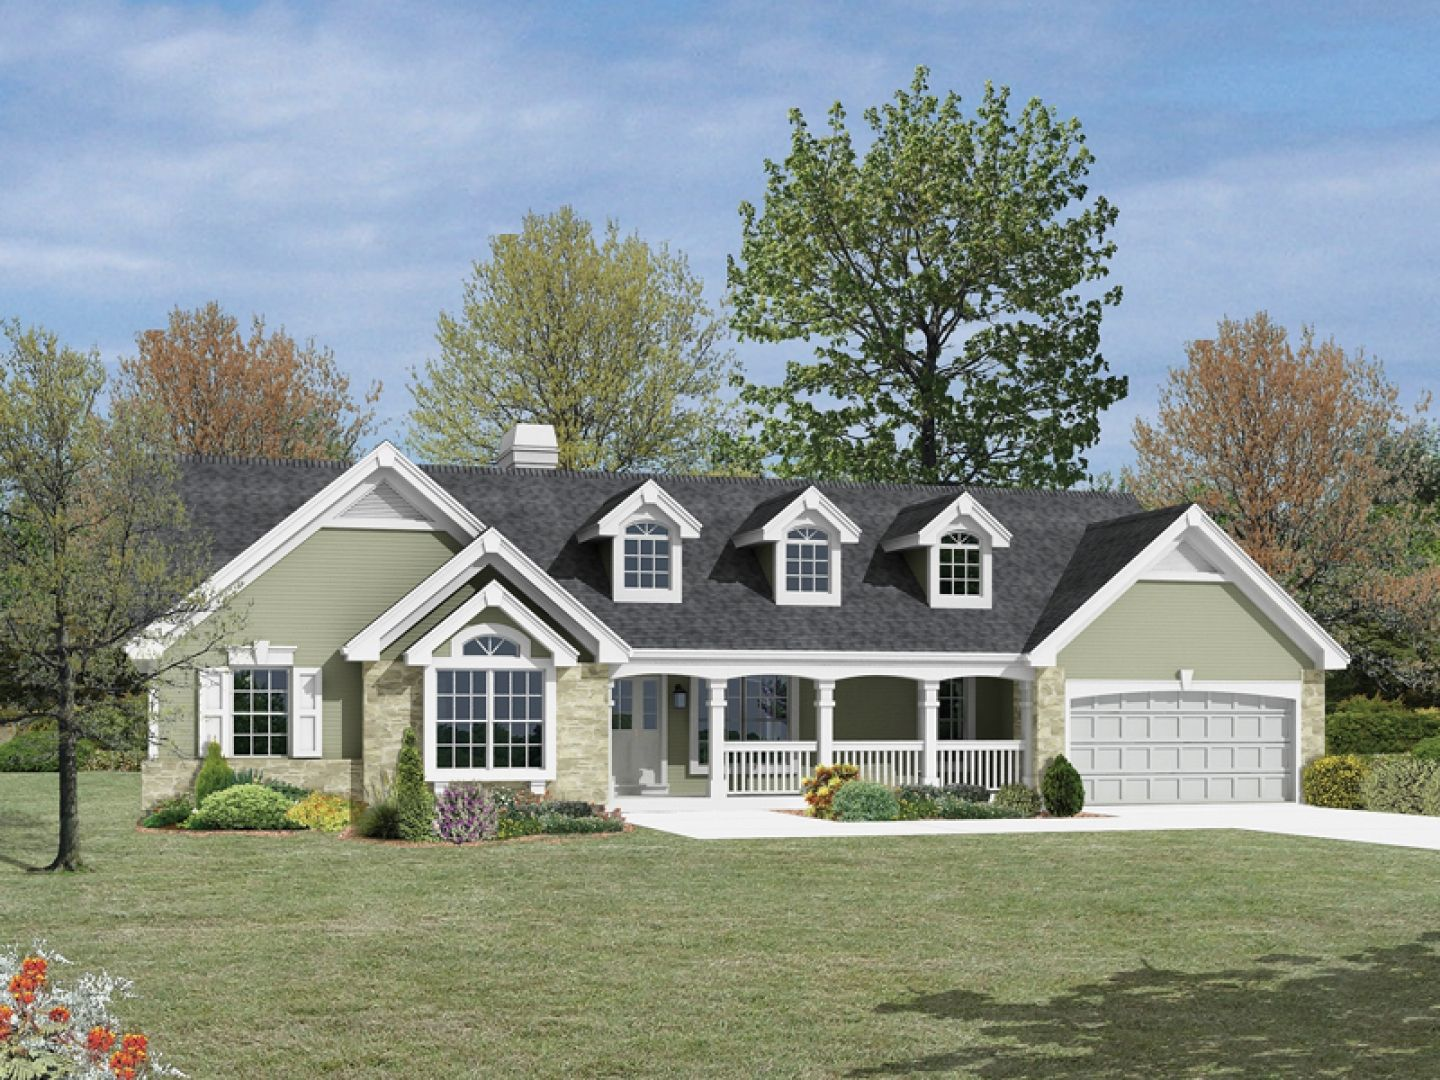 Southern style house plans with wrap around porches for Home and ranch